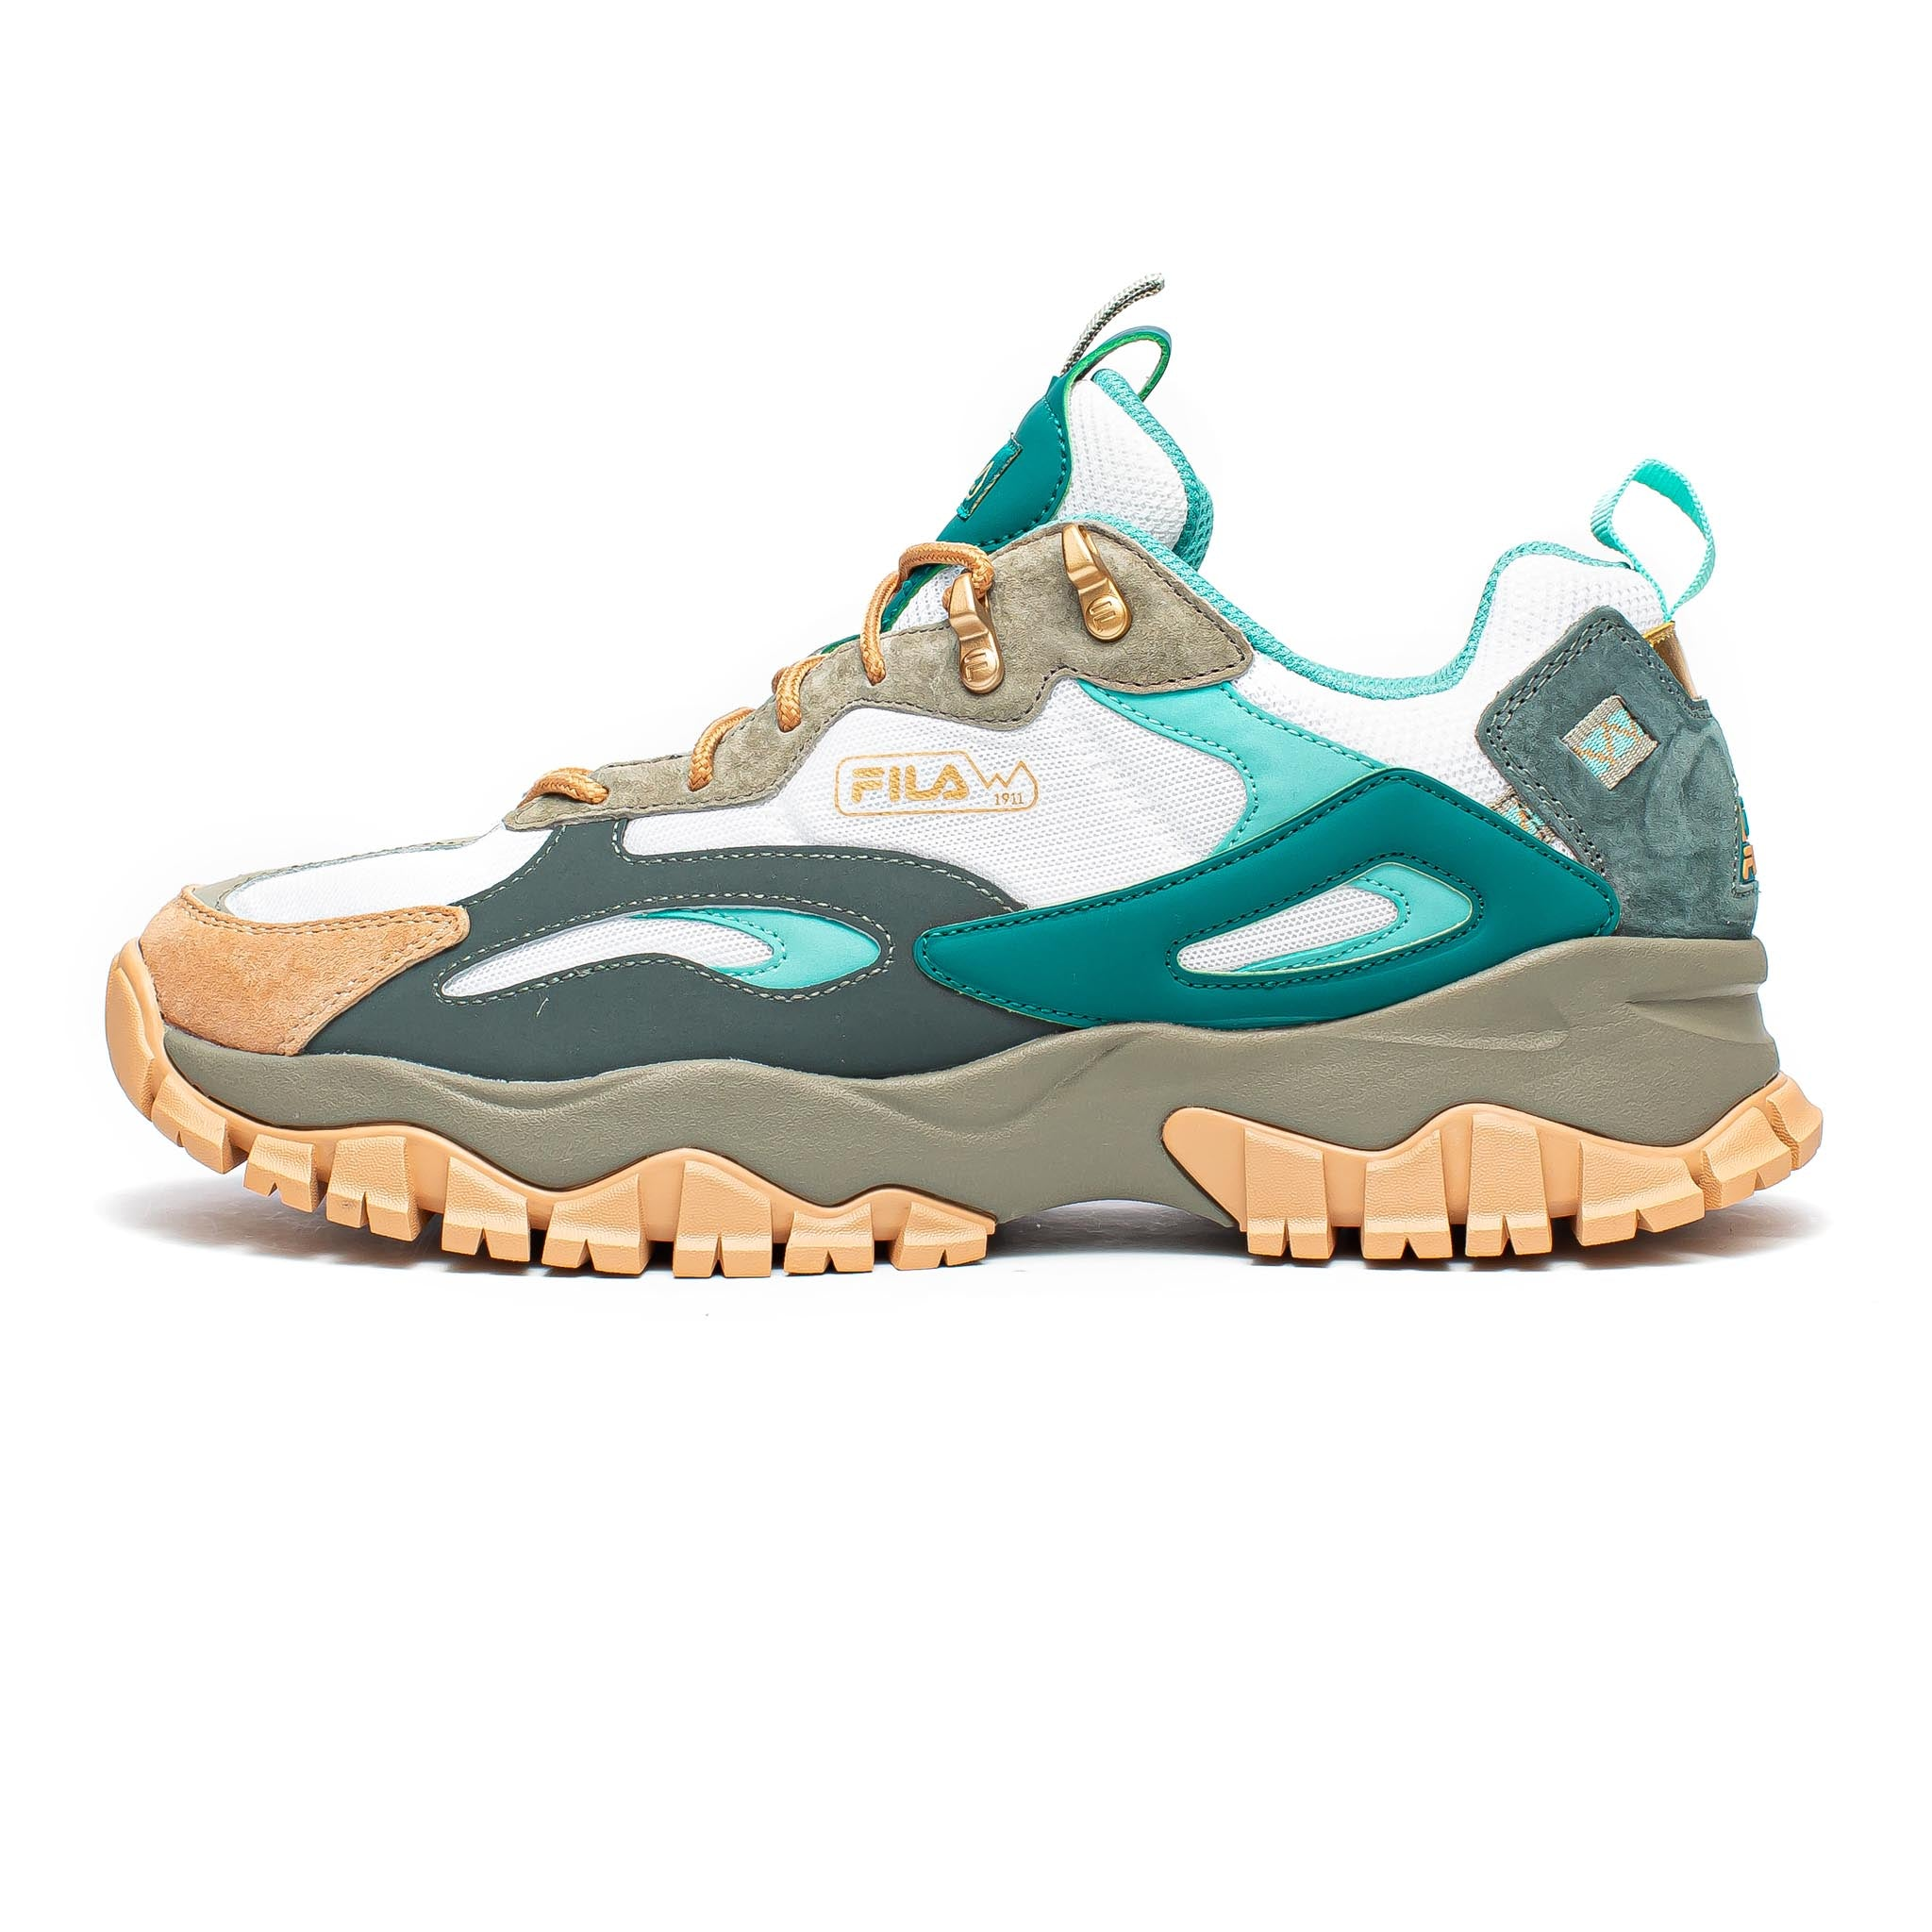 Fila Ray Tracer TR2 White/Teal